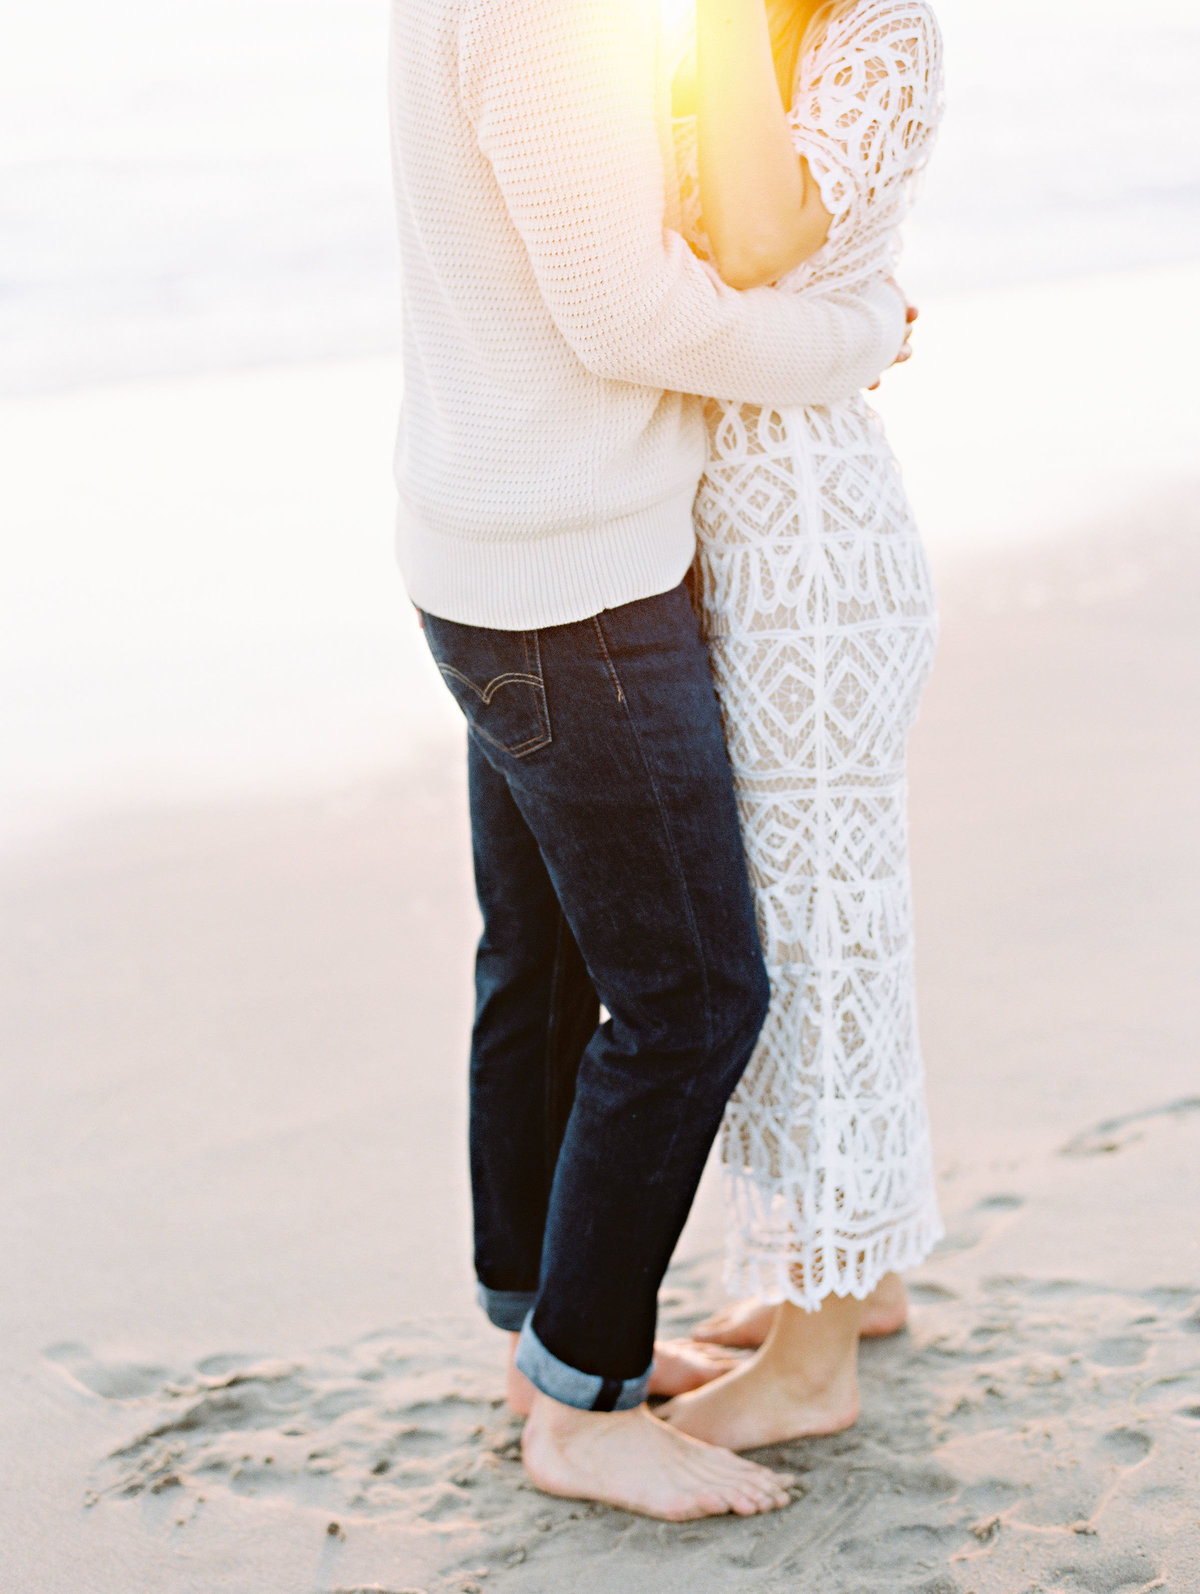 marisaholmes_beach_engagement_022